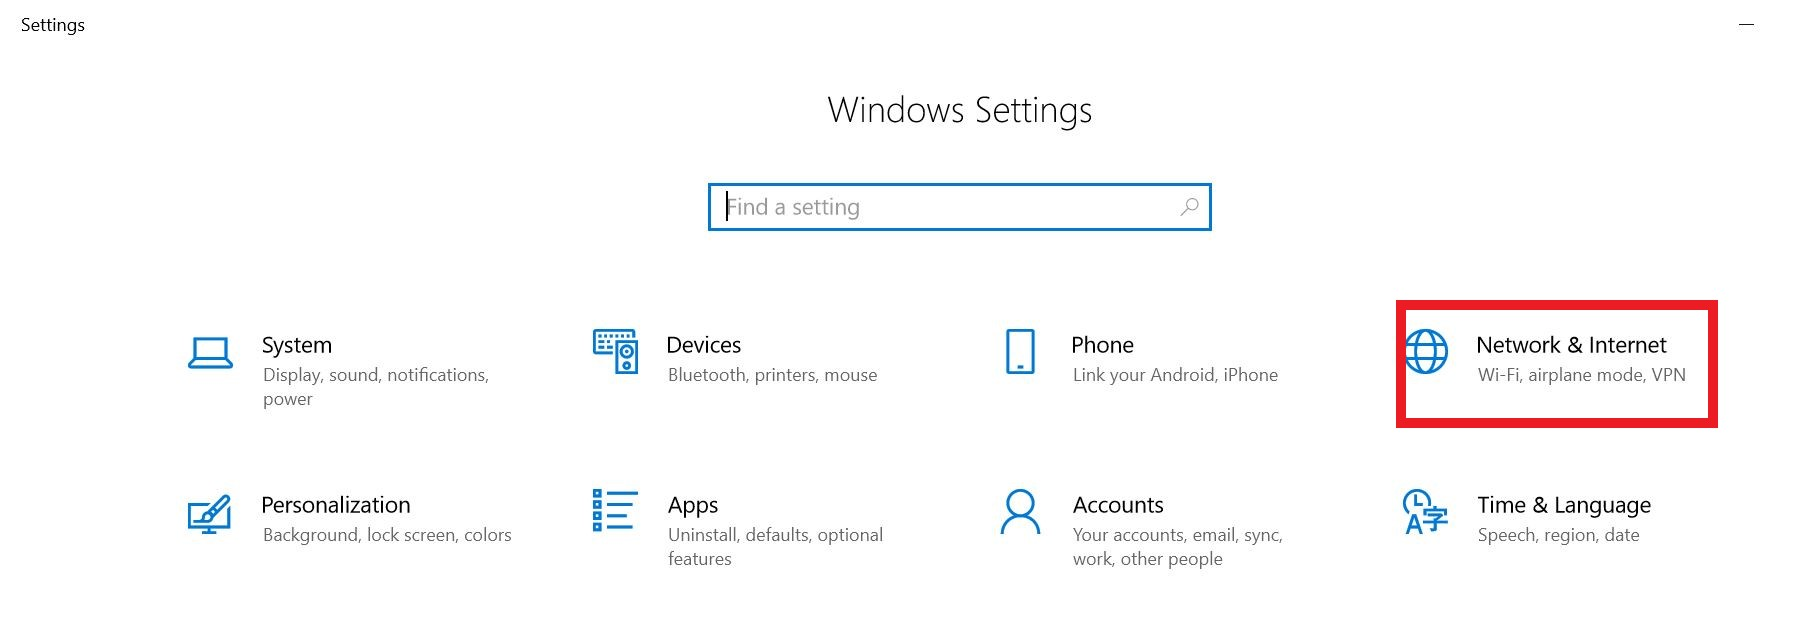 Can't find my camera with FLIR IP Config on Windows 10